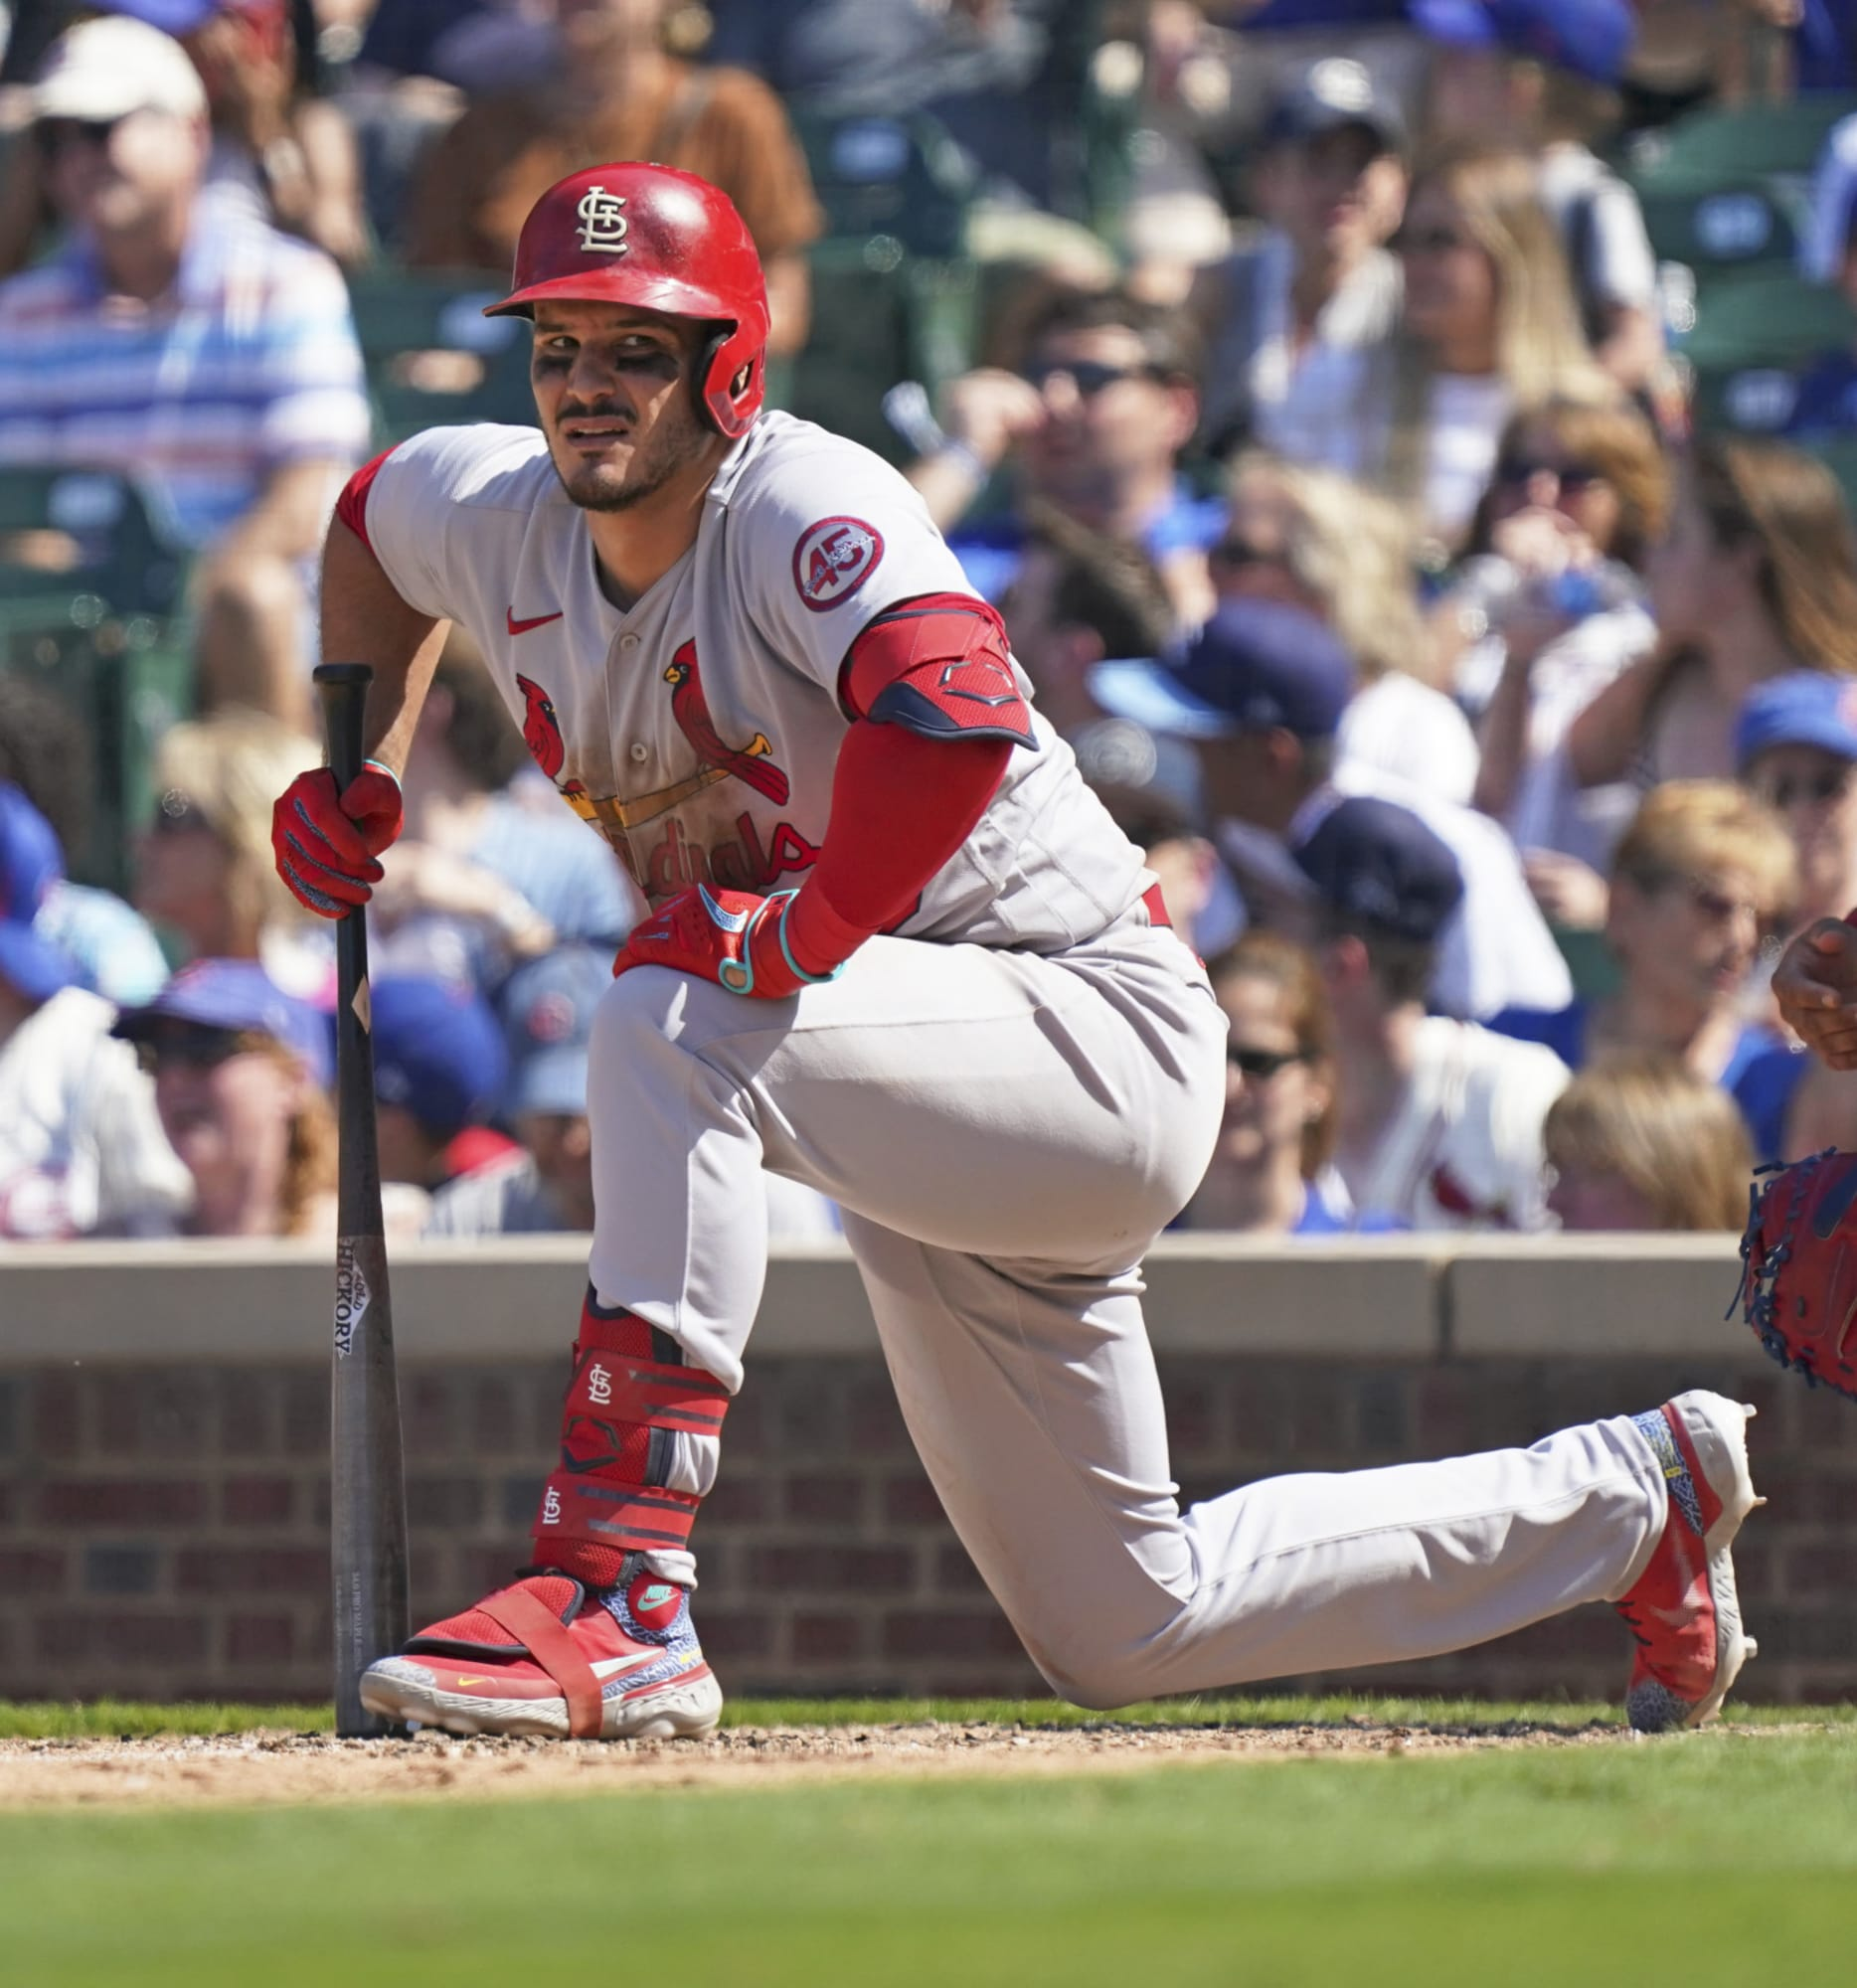 Cubs series full of more ugly for the St. Louis Cardinals